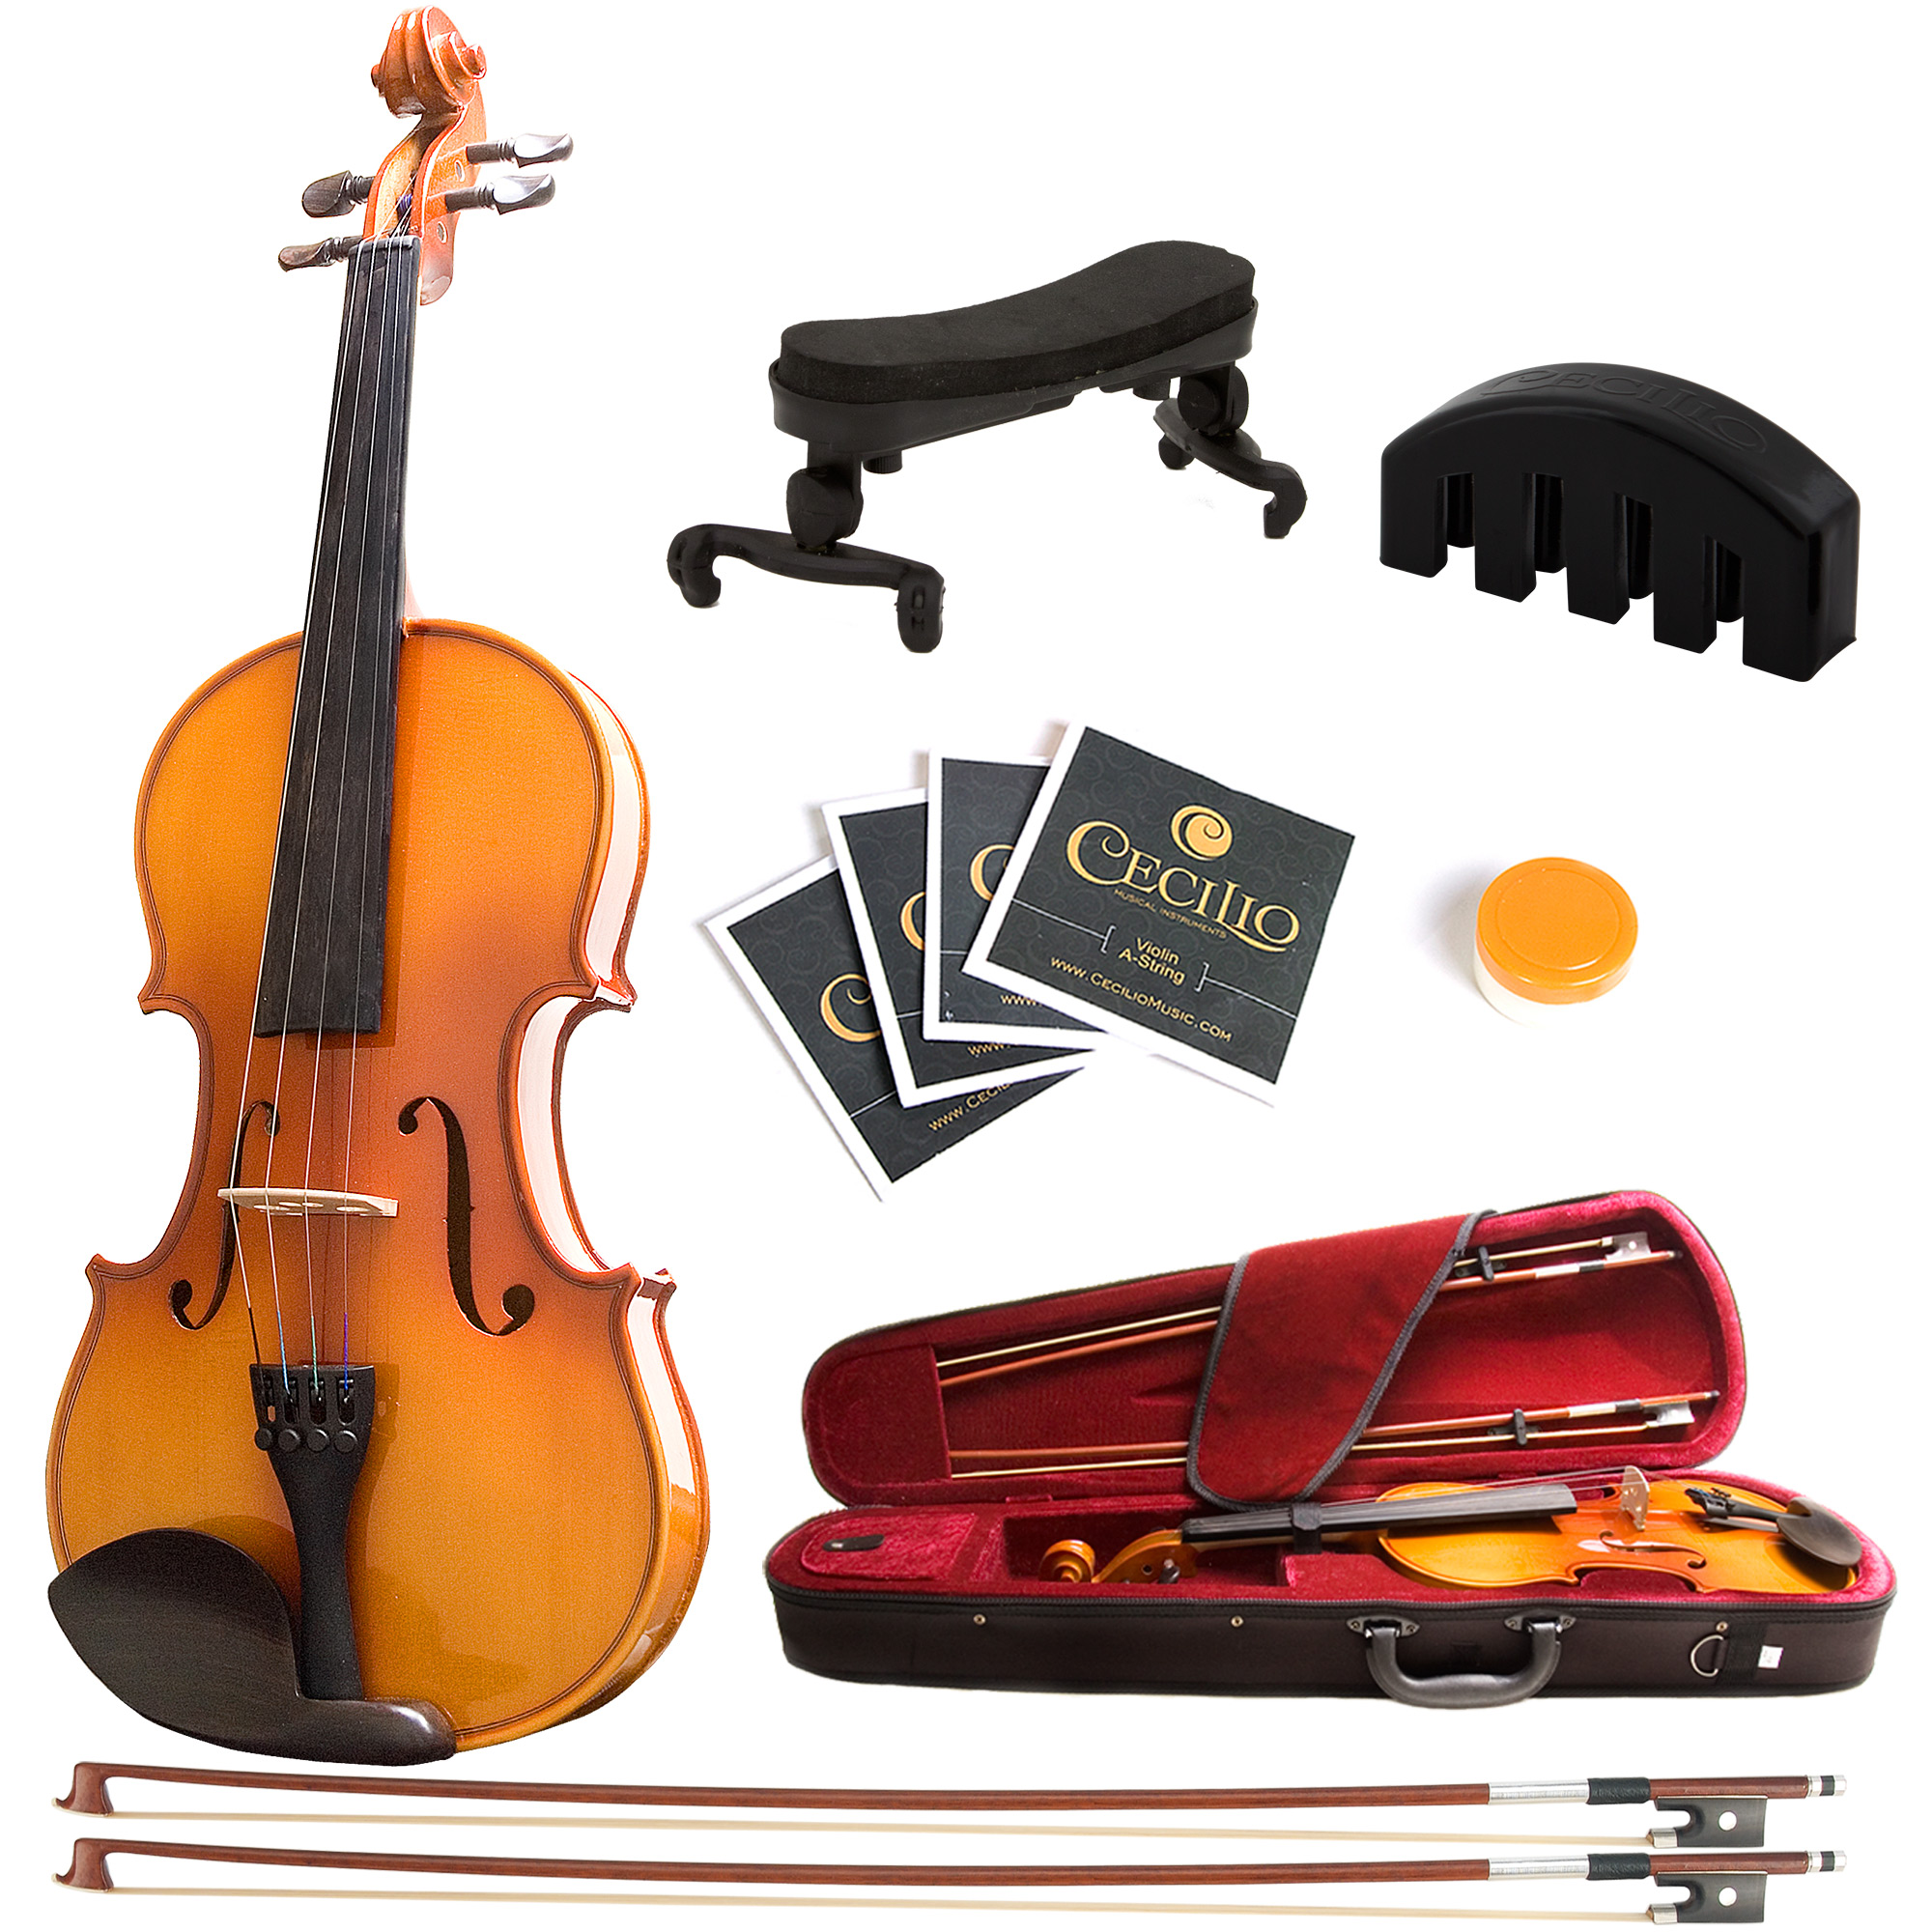 Mendini by Cecilio Size 3 4 MV400 Ebony Fitted Solid Wood Violin with 2 Bows, Shoulder... by Cecilio Musical Instruments